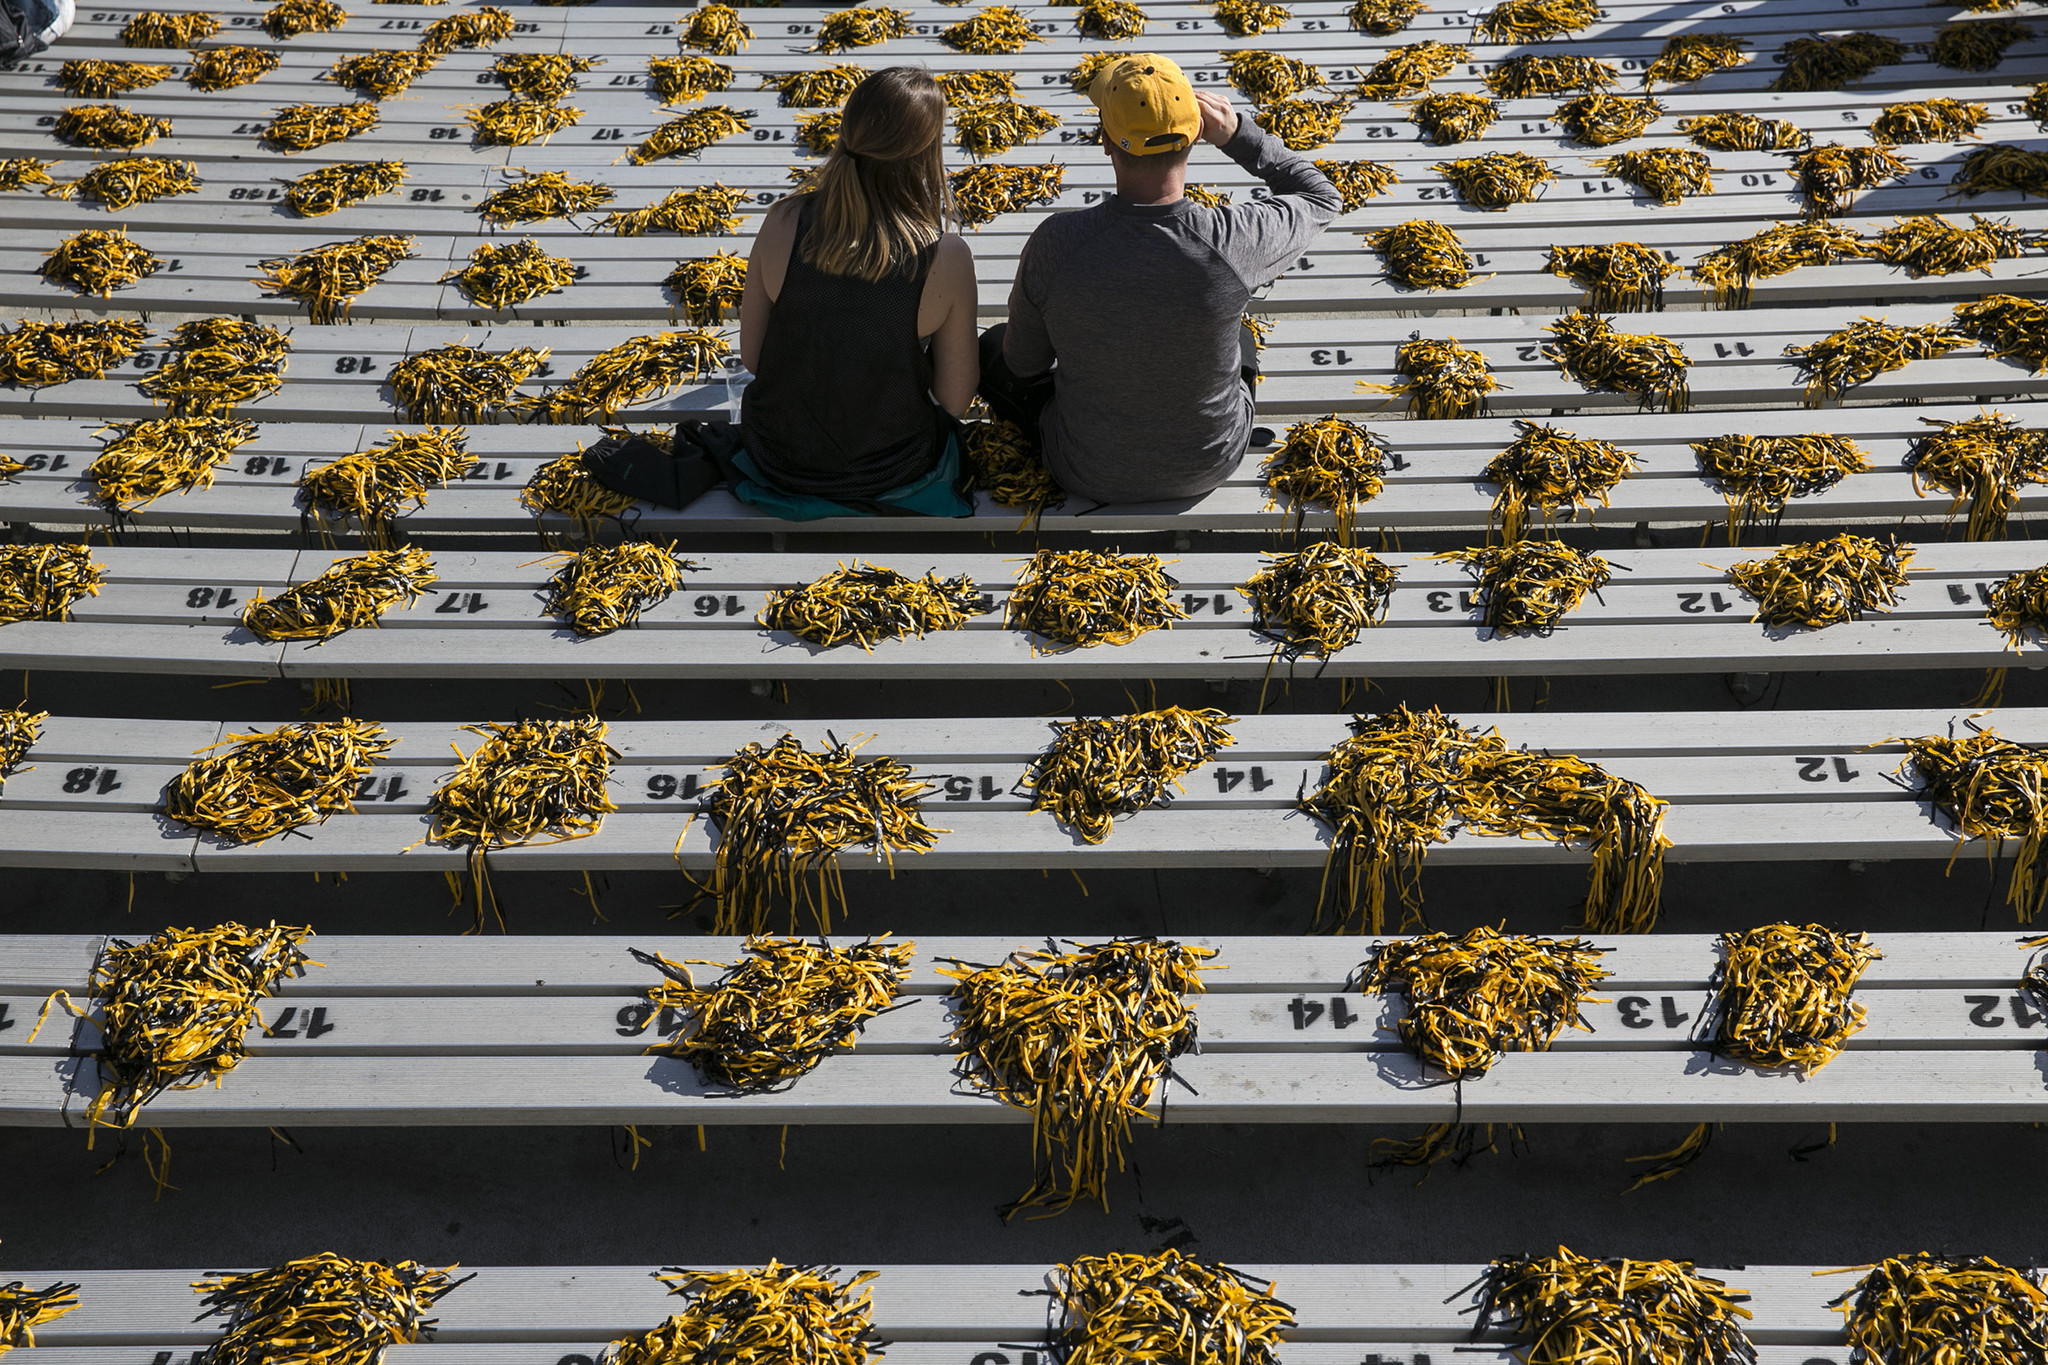 (Robert Gauthier / Los Angeles Times)